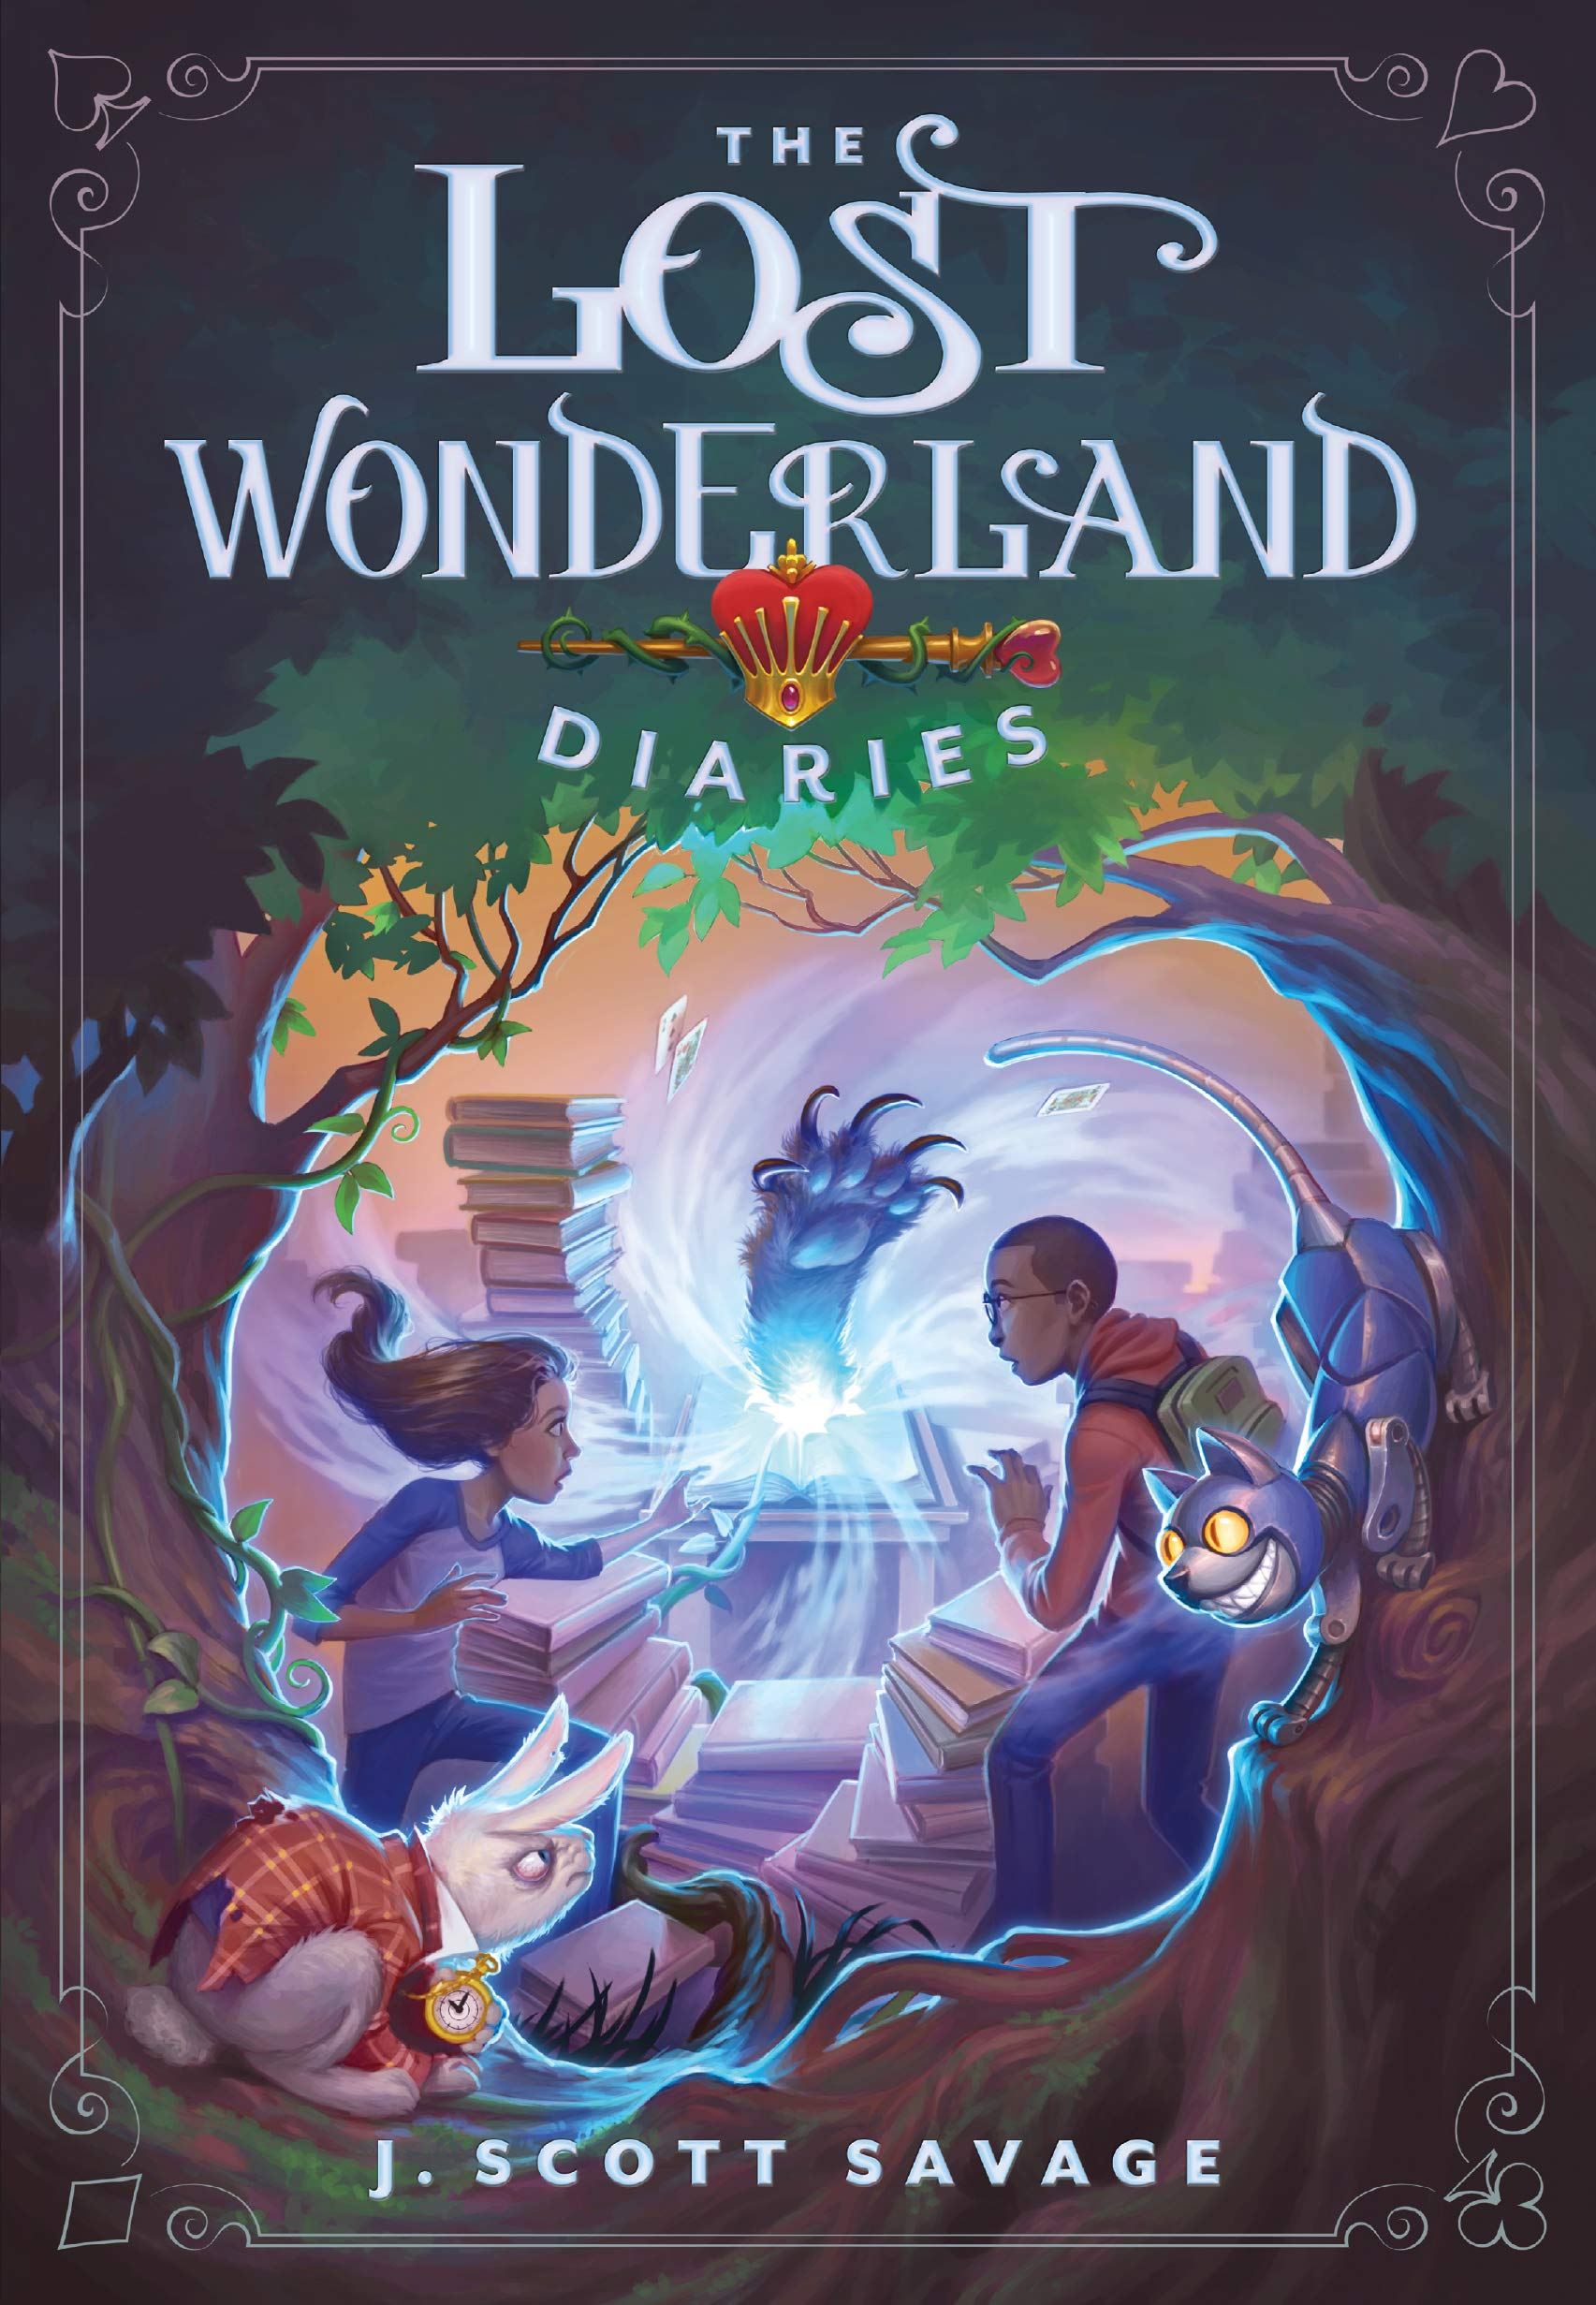 The Lost in Wonderland Diaries